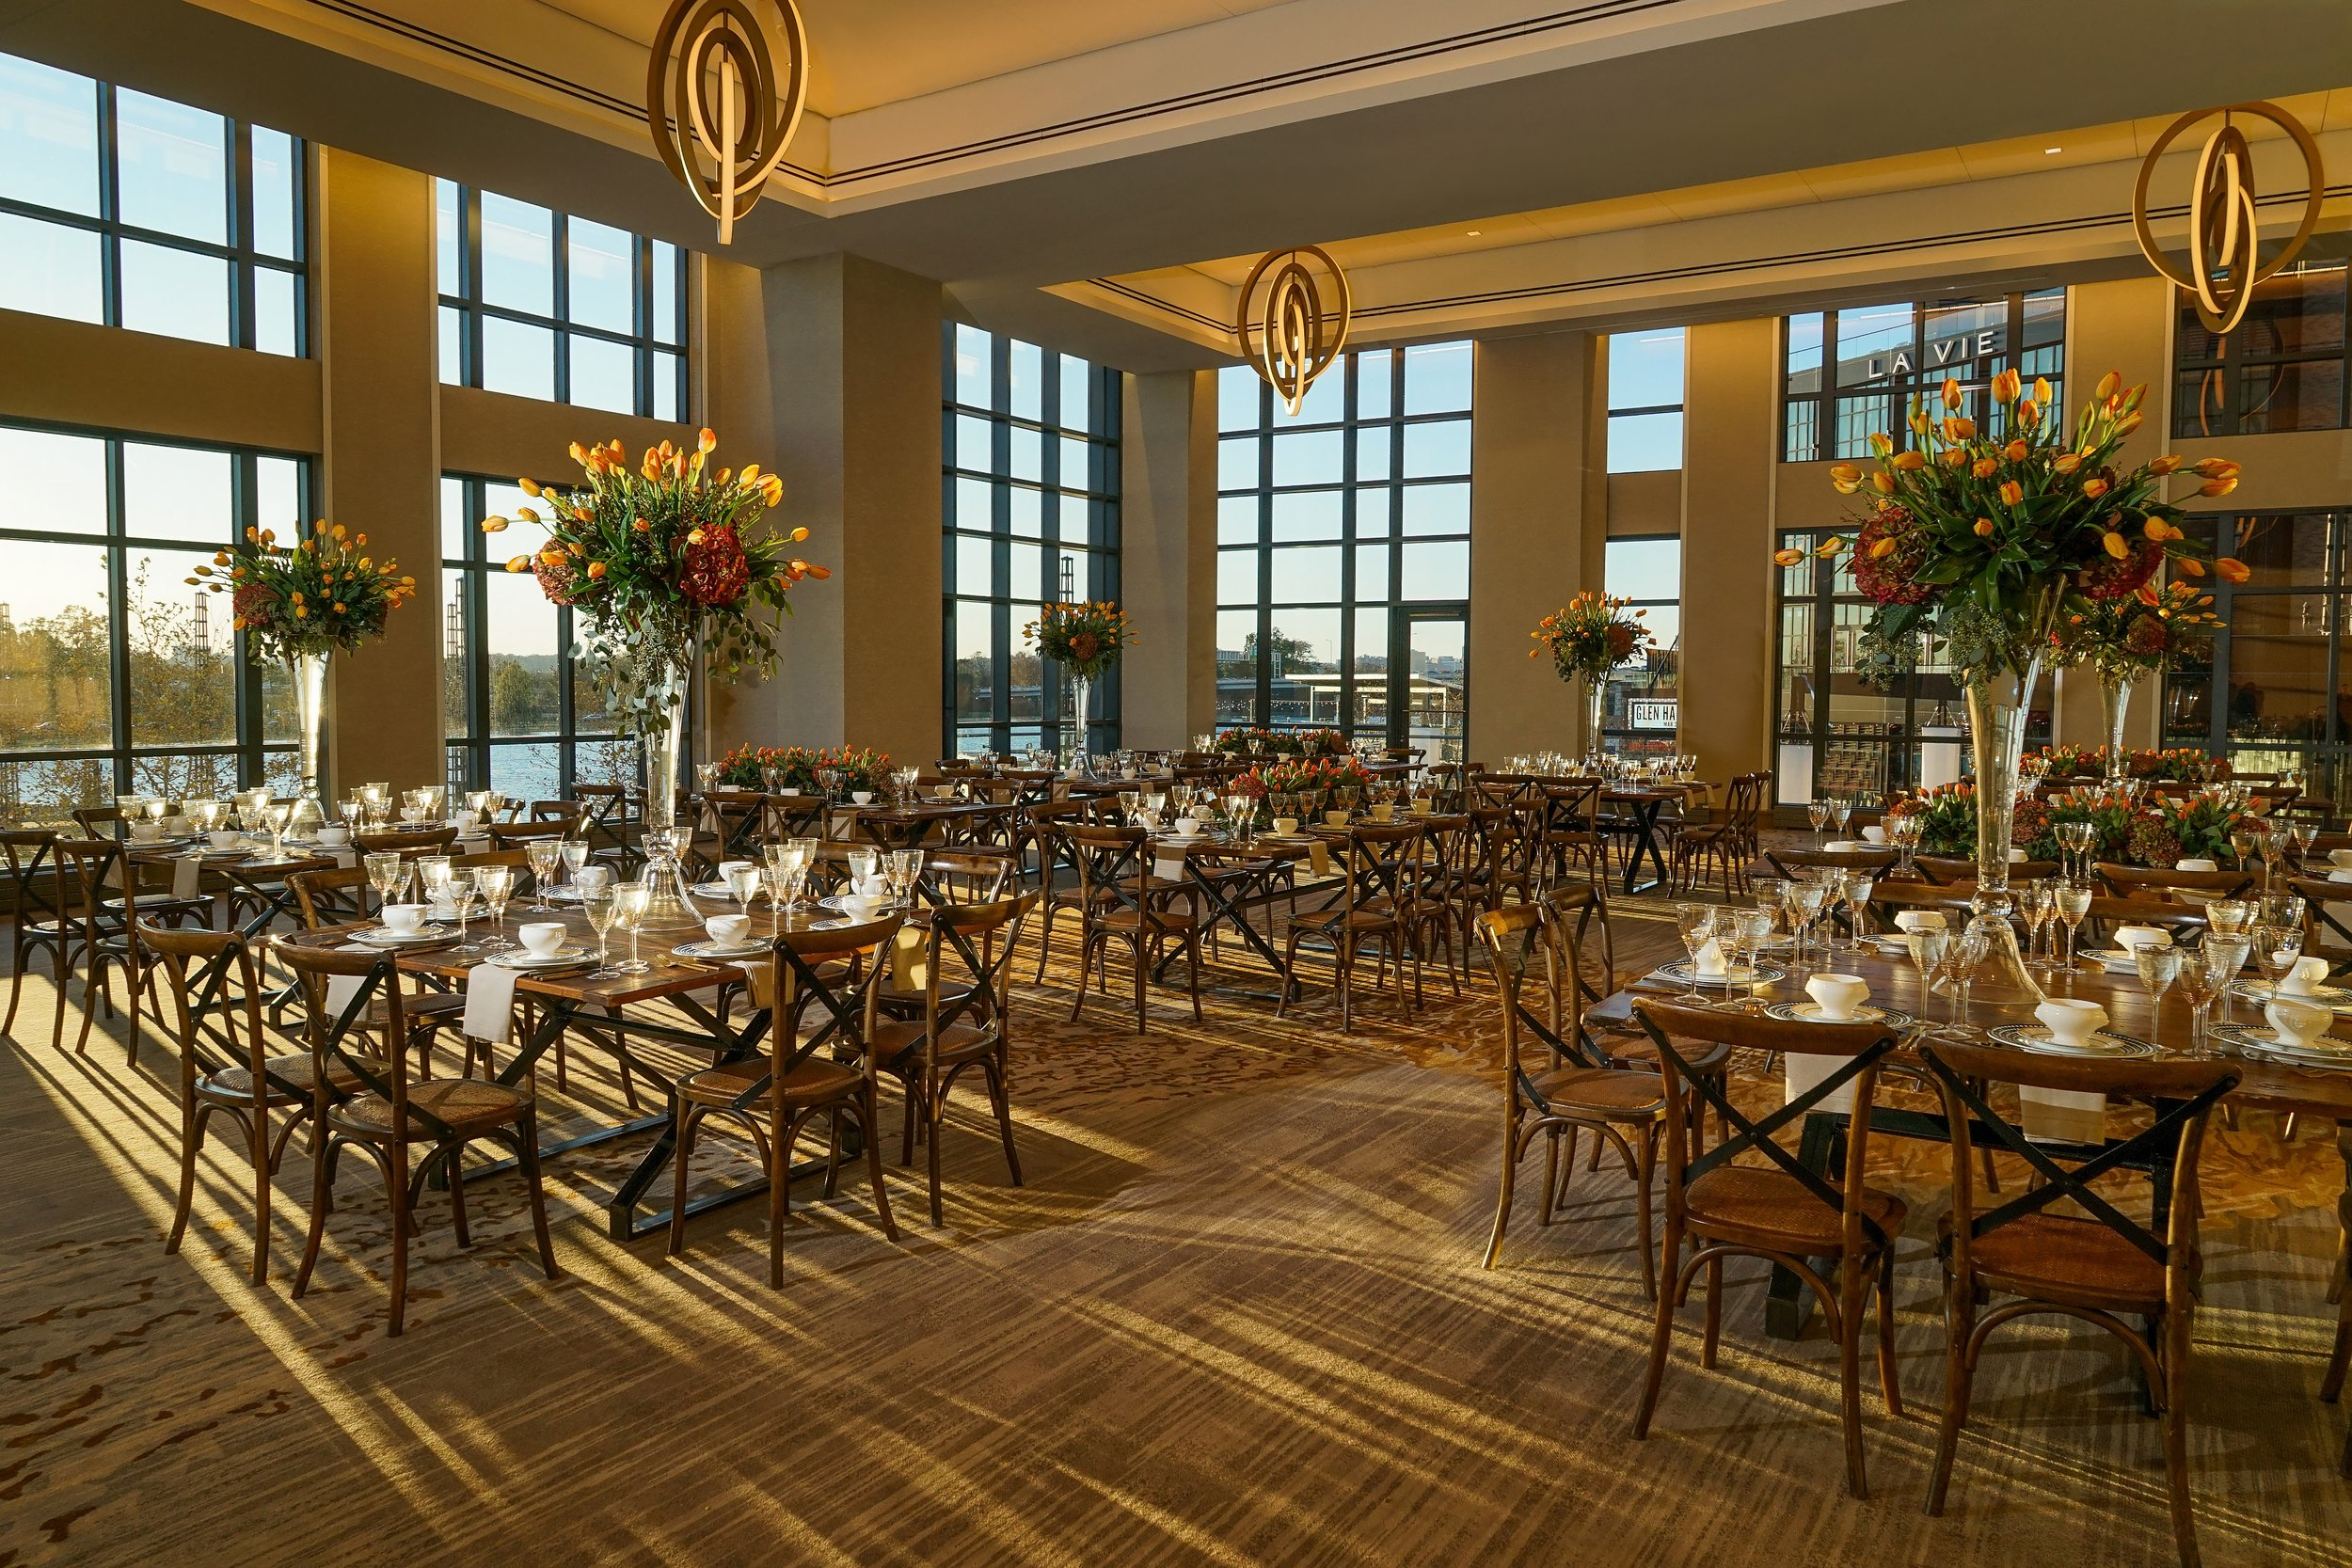 InterContinental-Wharf-DC-Wedding-And-Event-Venues-andrew-roby-events